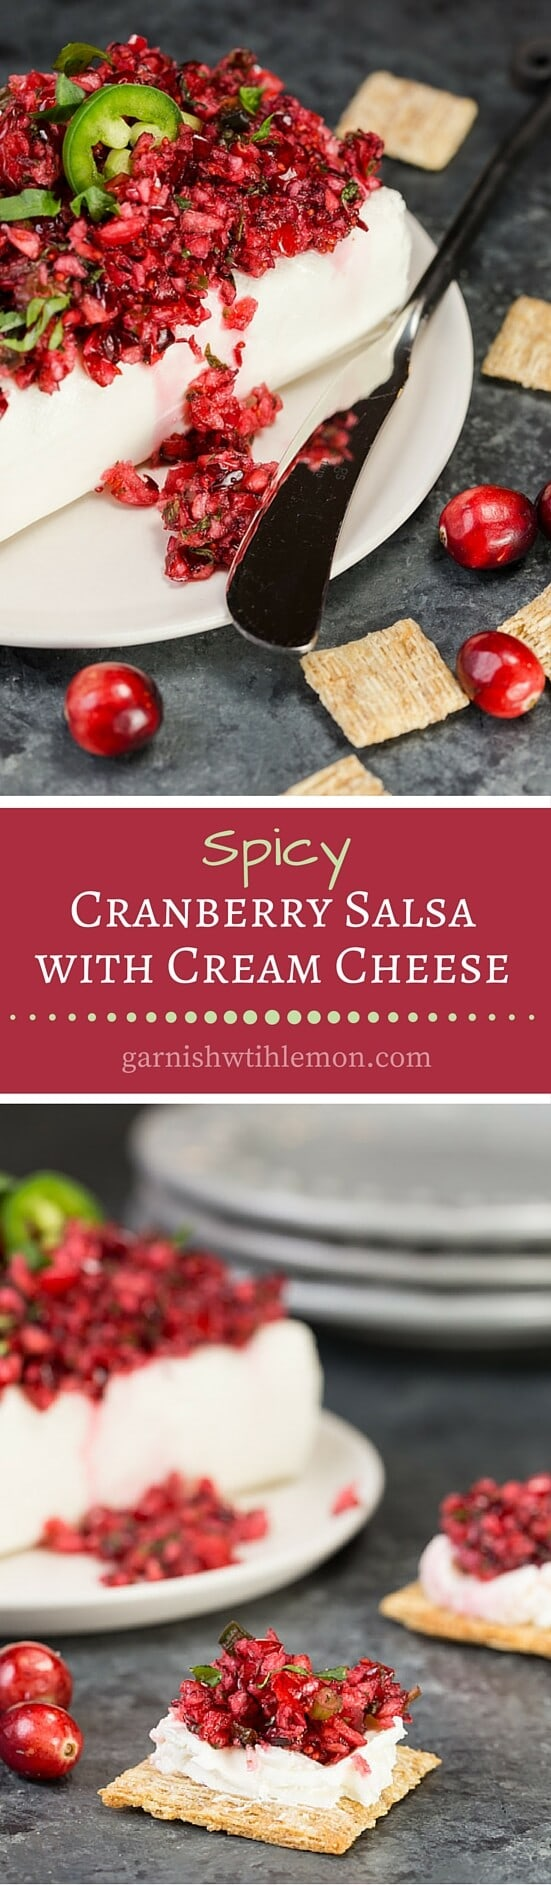 collage image of easy Spicy Cranberry Salsa